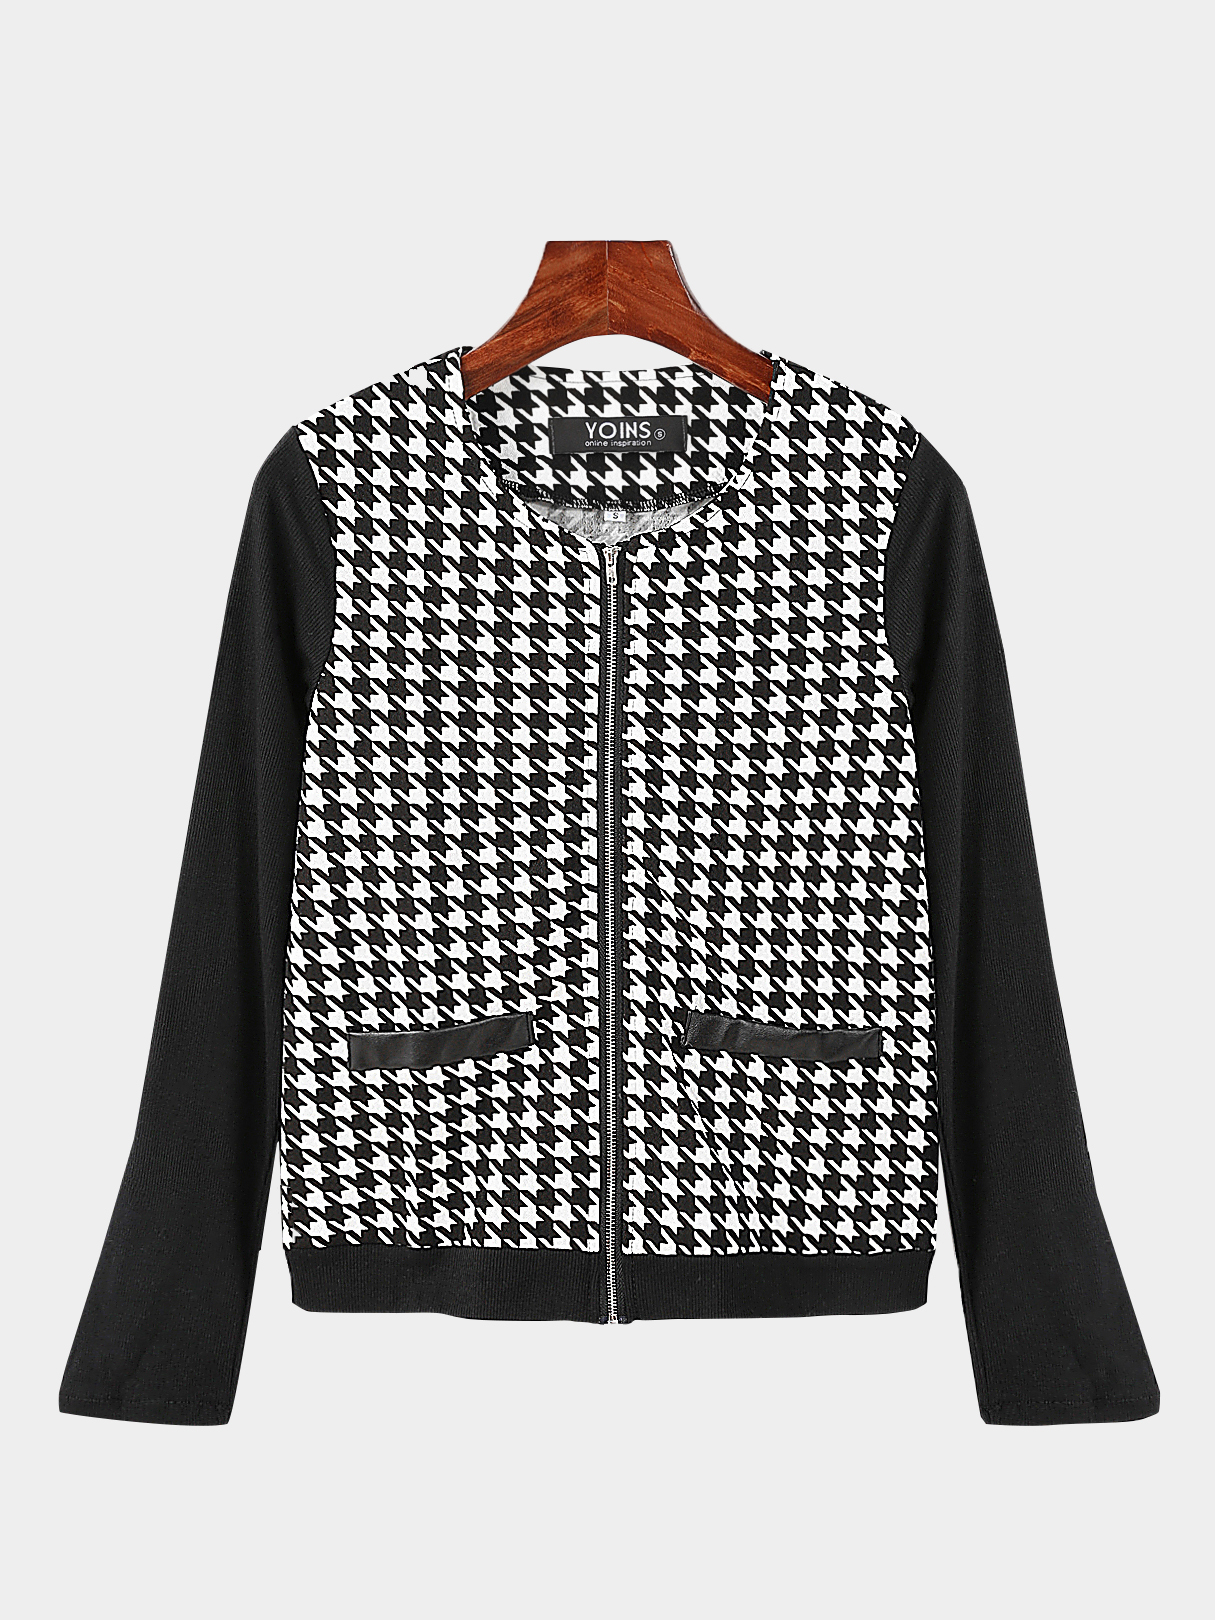 Black Fashion Houndstooth Jacket